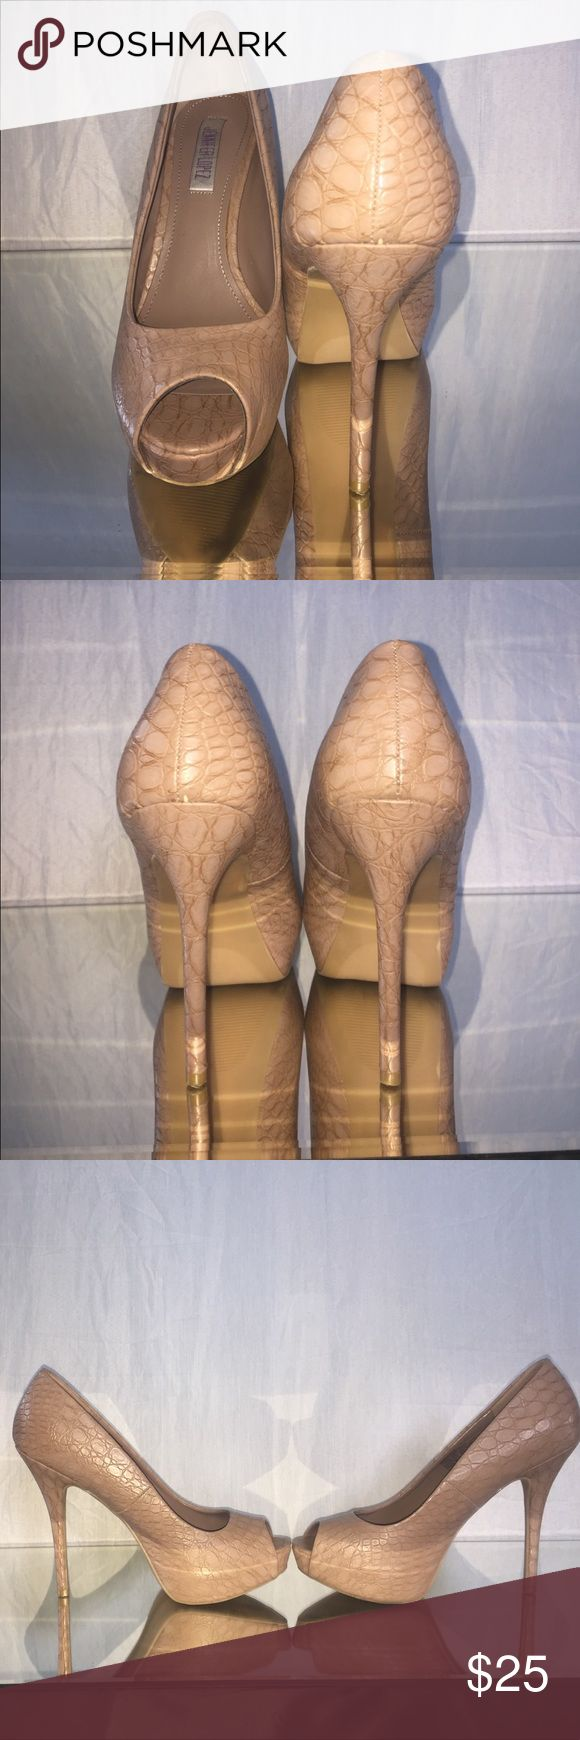 Sexy nude leather Jennifer Lopez heels Sexy nude leather Jennifer Lopez heels. A great staple for any fashionista. They are a nude blush color, but they are so pretty y'all! Very sad to see these go but due to back issues I can no longer wear heels of this height. Worn only one time, only scuffs are located on the left shoe but not noticeable when wearing. Jennifer Lopez Shoes Heels